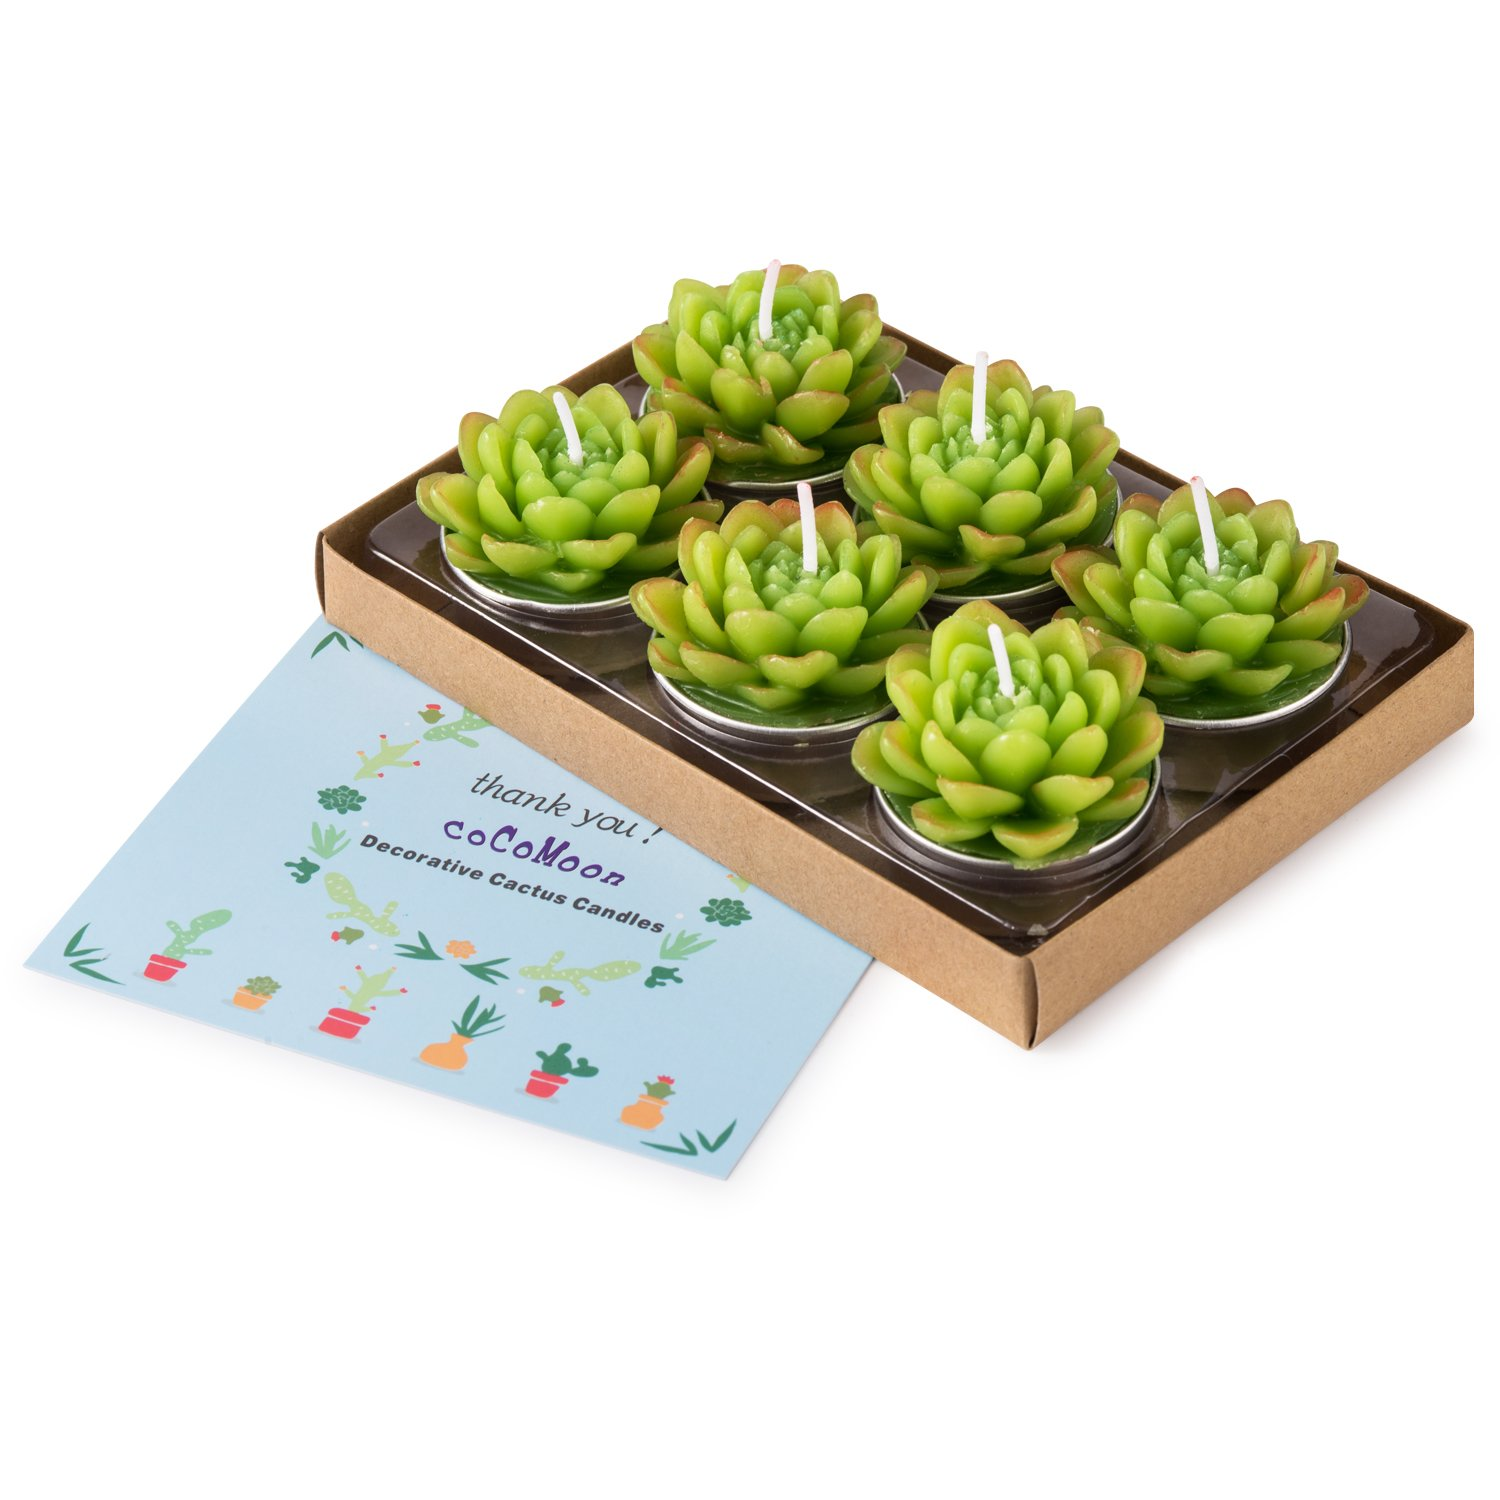 Handmade Delicate Succulent Cactus Candles Perfect Cactus Tealight Candles for Birthday Party,Wedding Spa COCOMOON Cactus Candles Home Decor Birthday Wedding Party( 6 Pcs) Home Decor Birthday Wedding Party/( 6 Pcs/) Cactus Candles 6Pcs